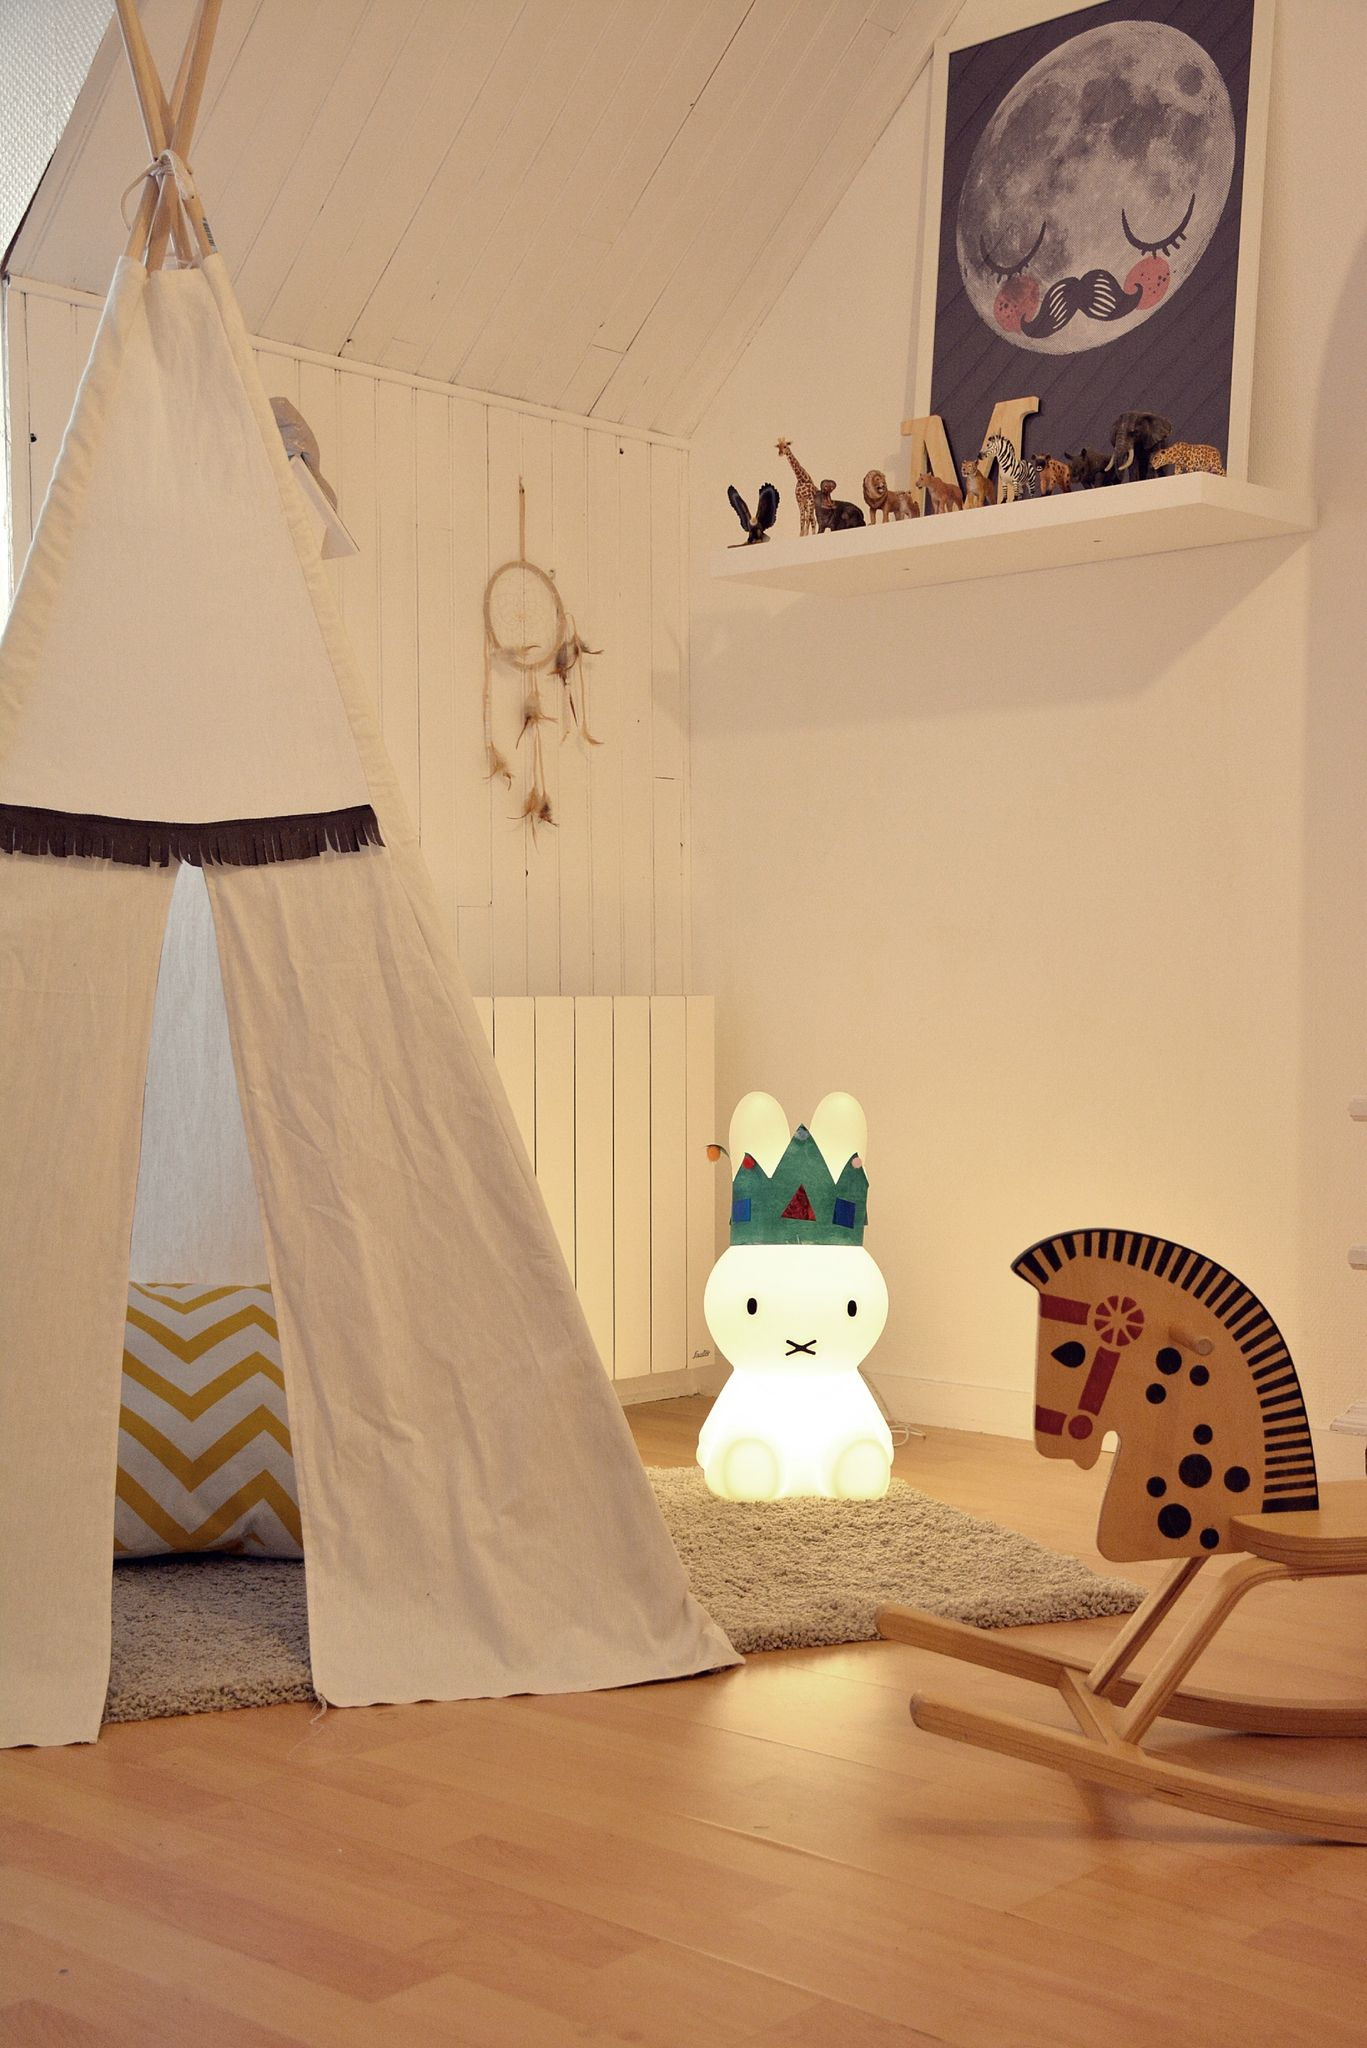 fabriquer soi m me un tipi chambre d 39 enfants pinterest fabriquer soi meme tuto tipi et. Black Bedroom Furniture Sets. Home Design Ideas